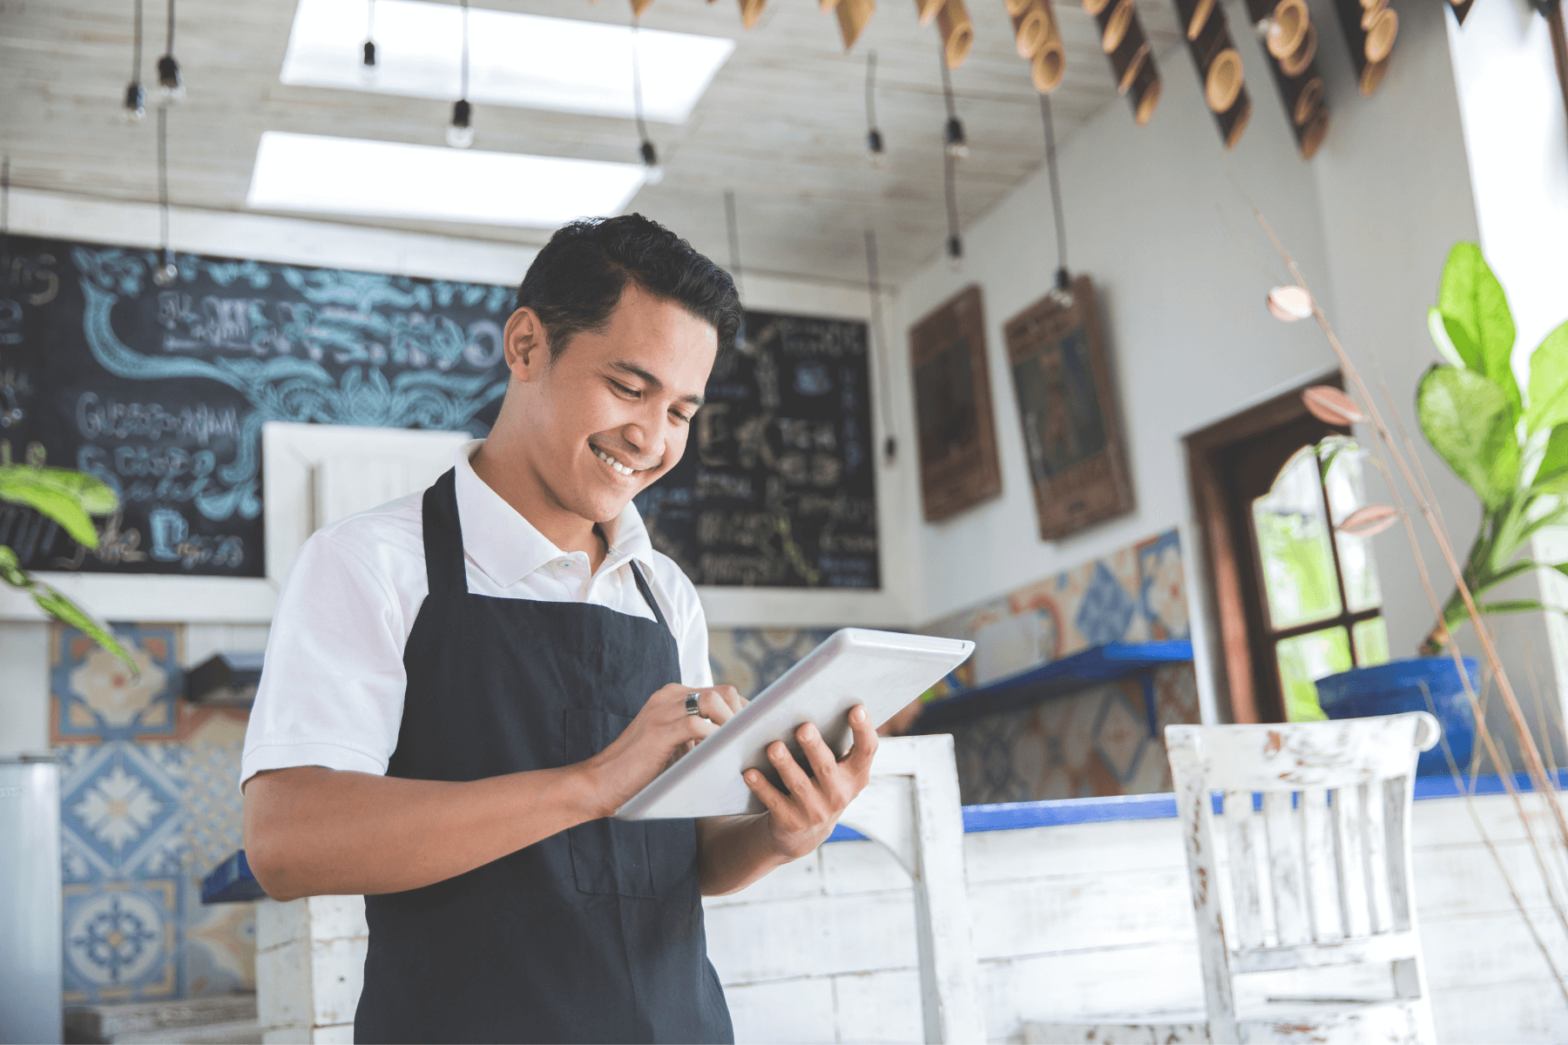 7 Tips To Increase Revenue For Small Business Owners